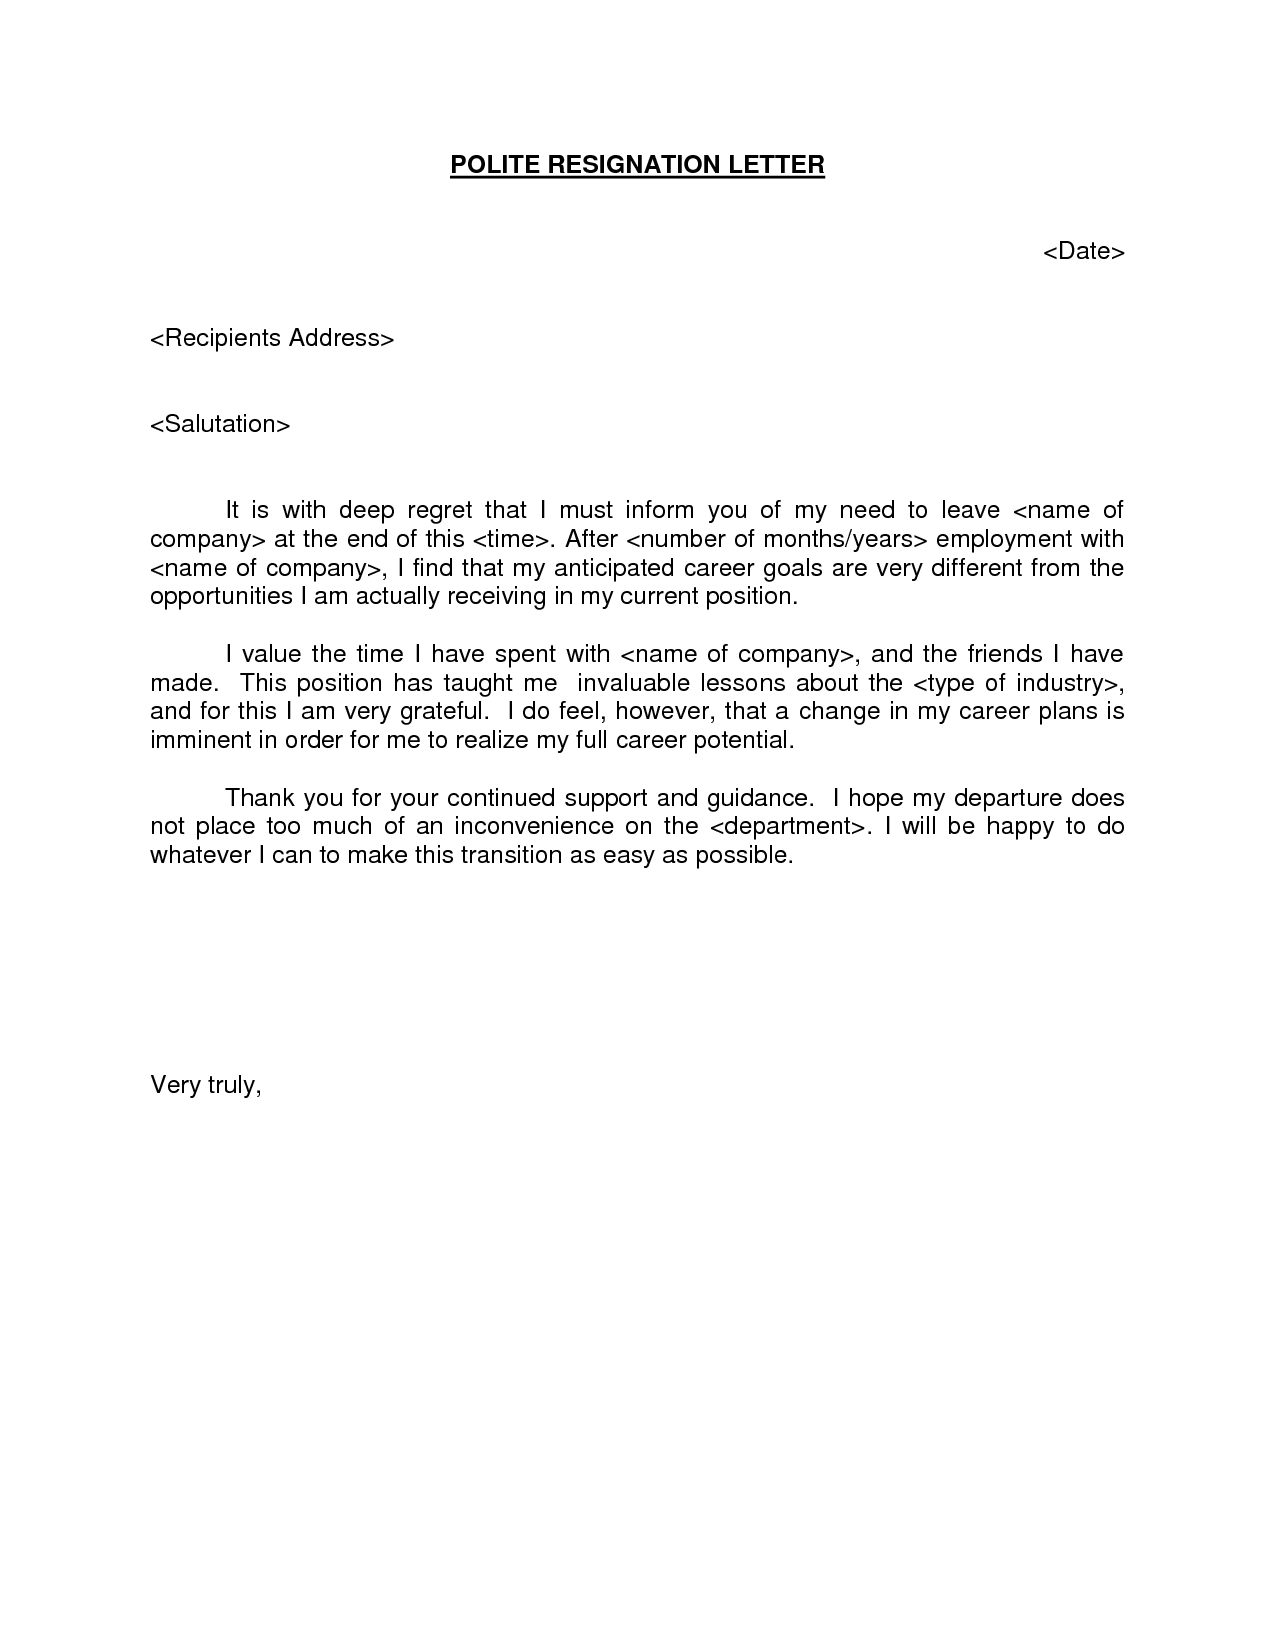 resignation letter letter of resignation meaning effective immediately and simple  English